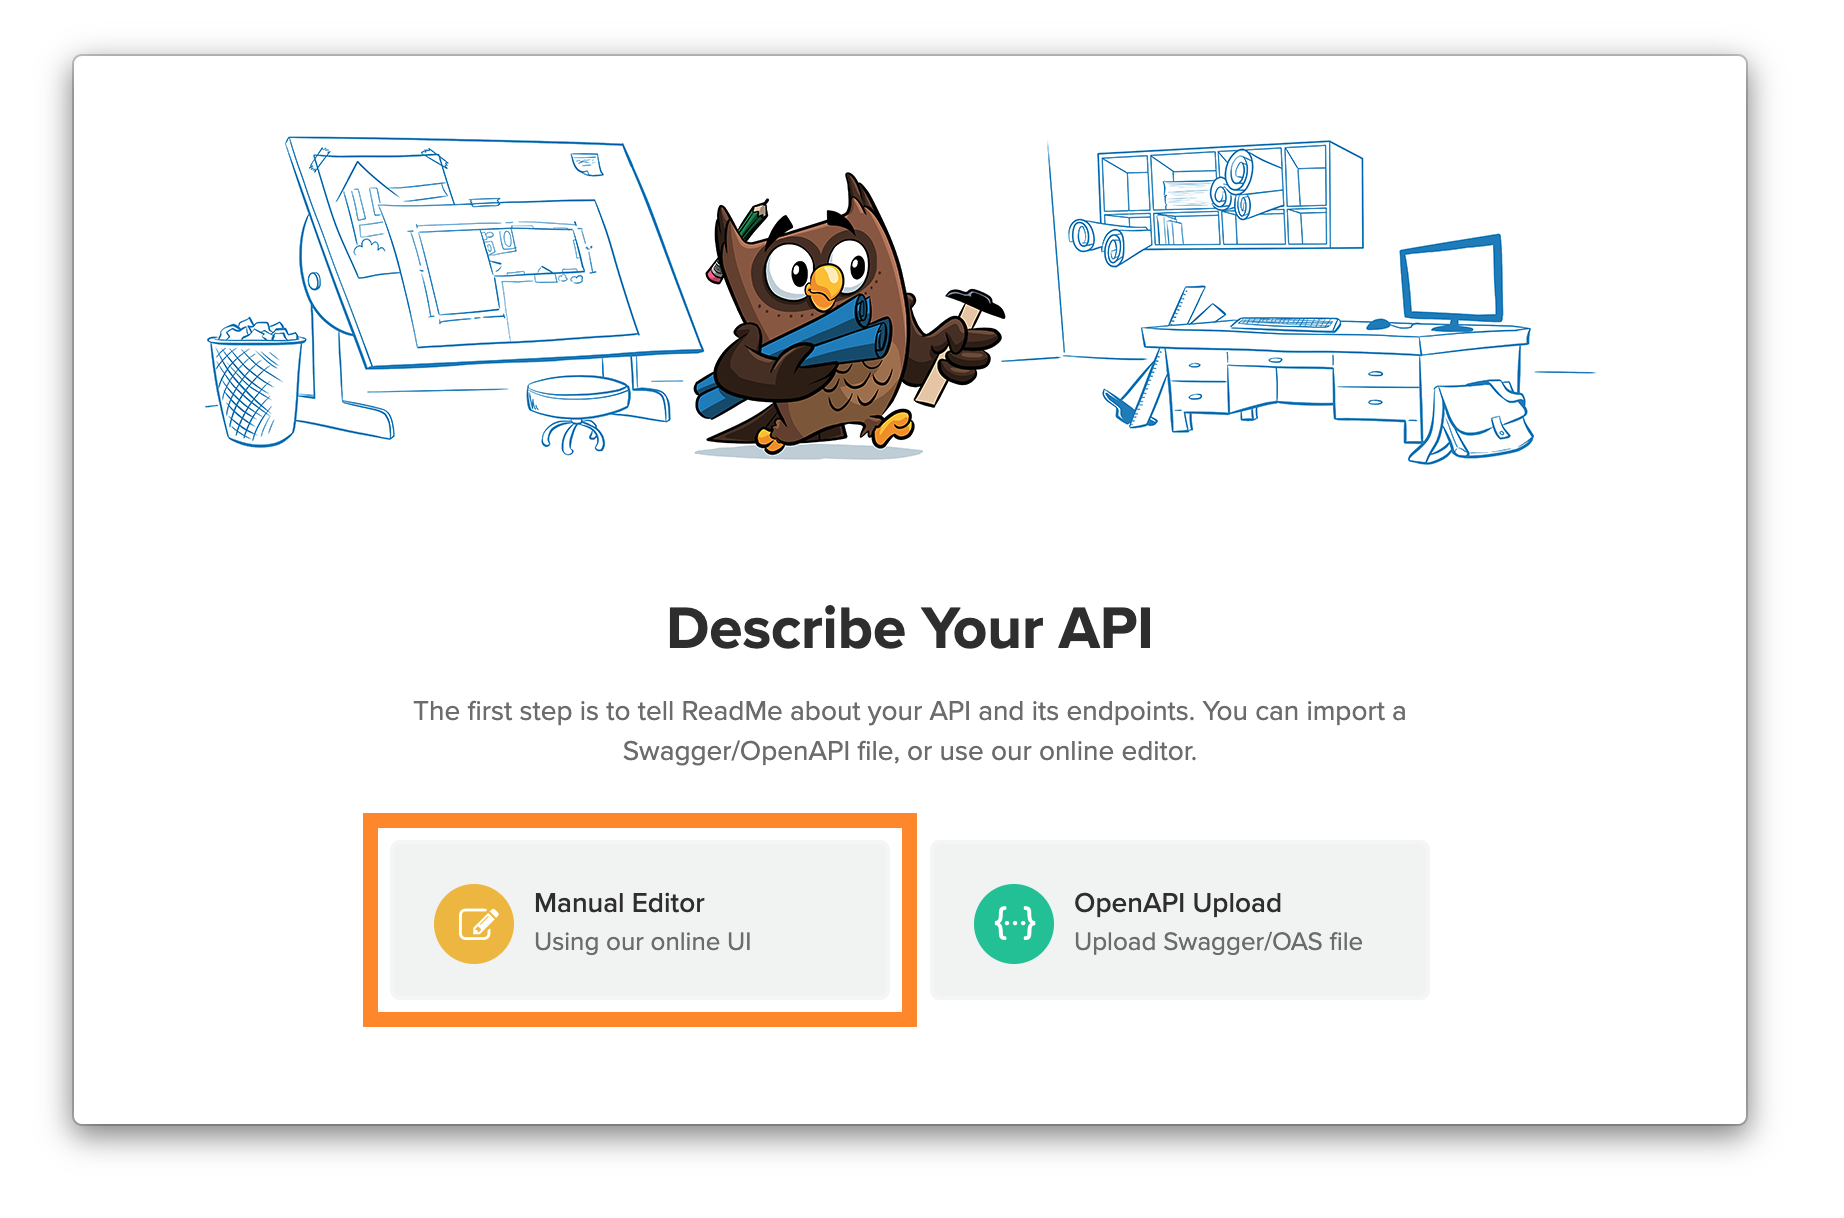 If you have an OpenAPI file, upload that instead!